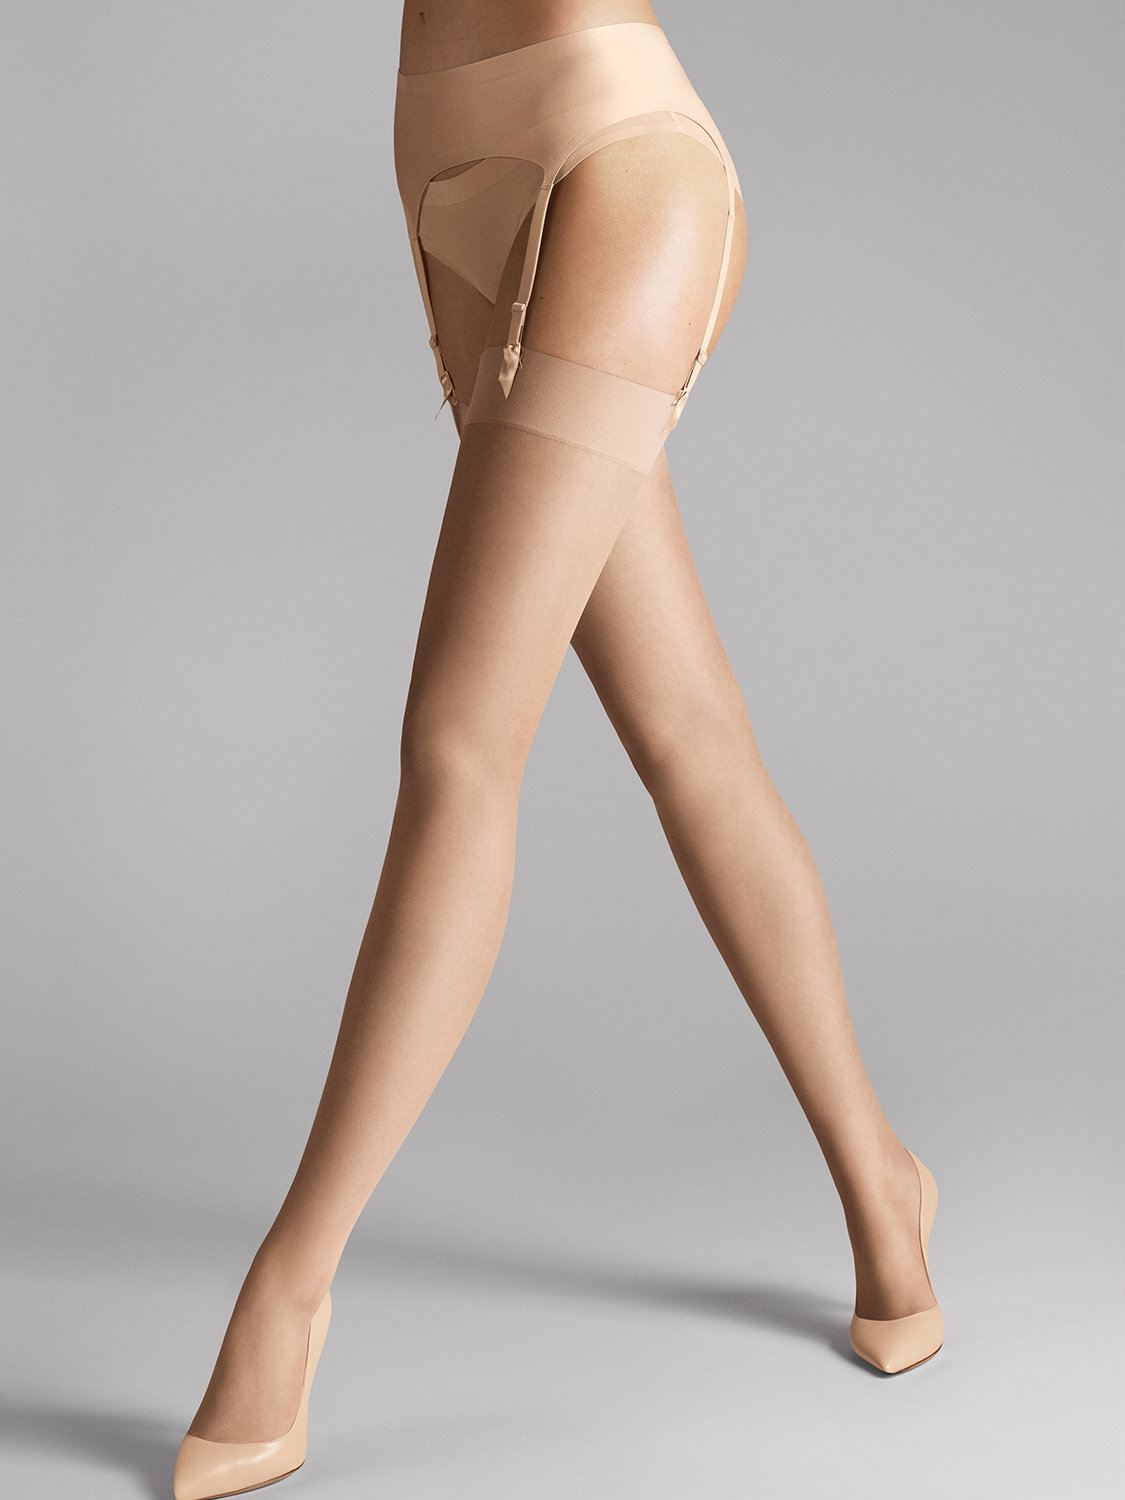 Колготы merino tights фото